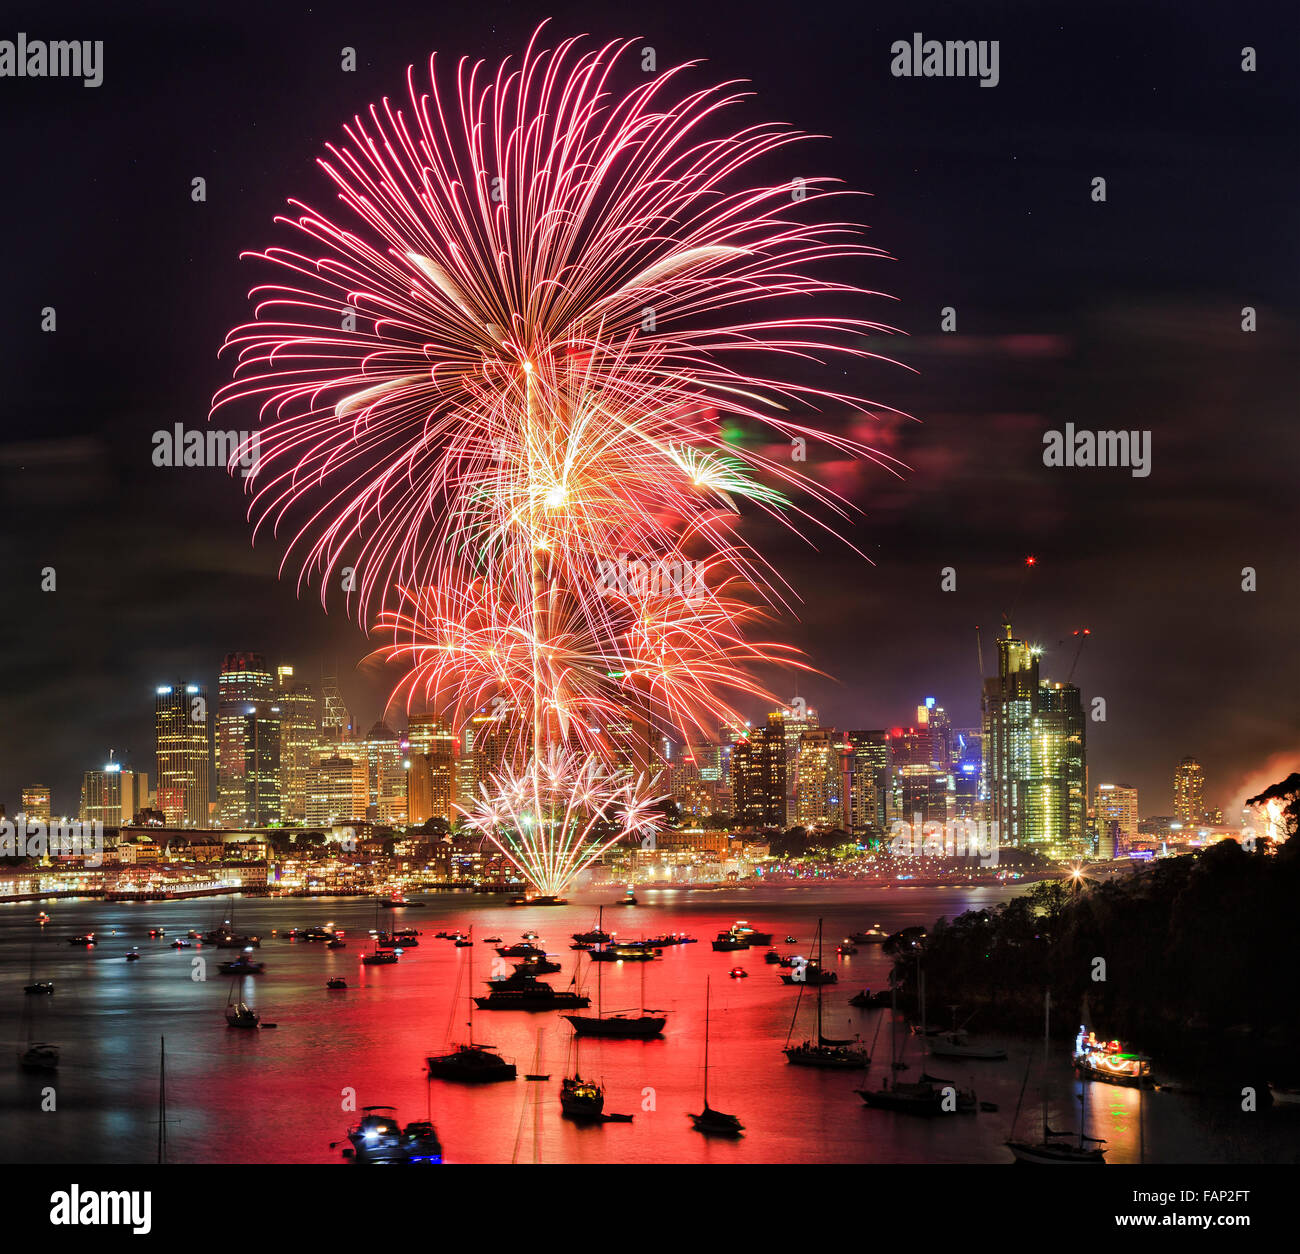 New year fireworks in Sydney from elevated lookout at Berrys bay over Sydney harbour with CBD skyscrapers under - Stock Image